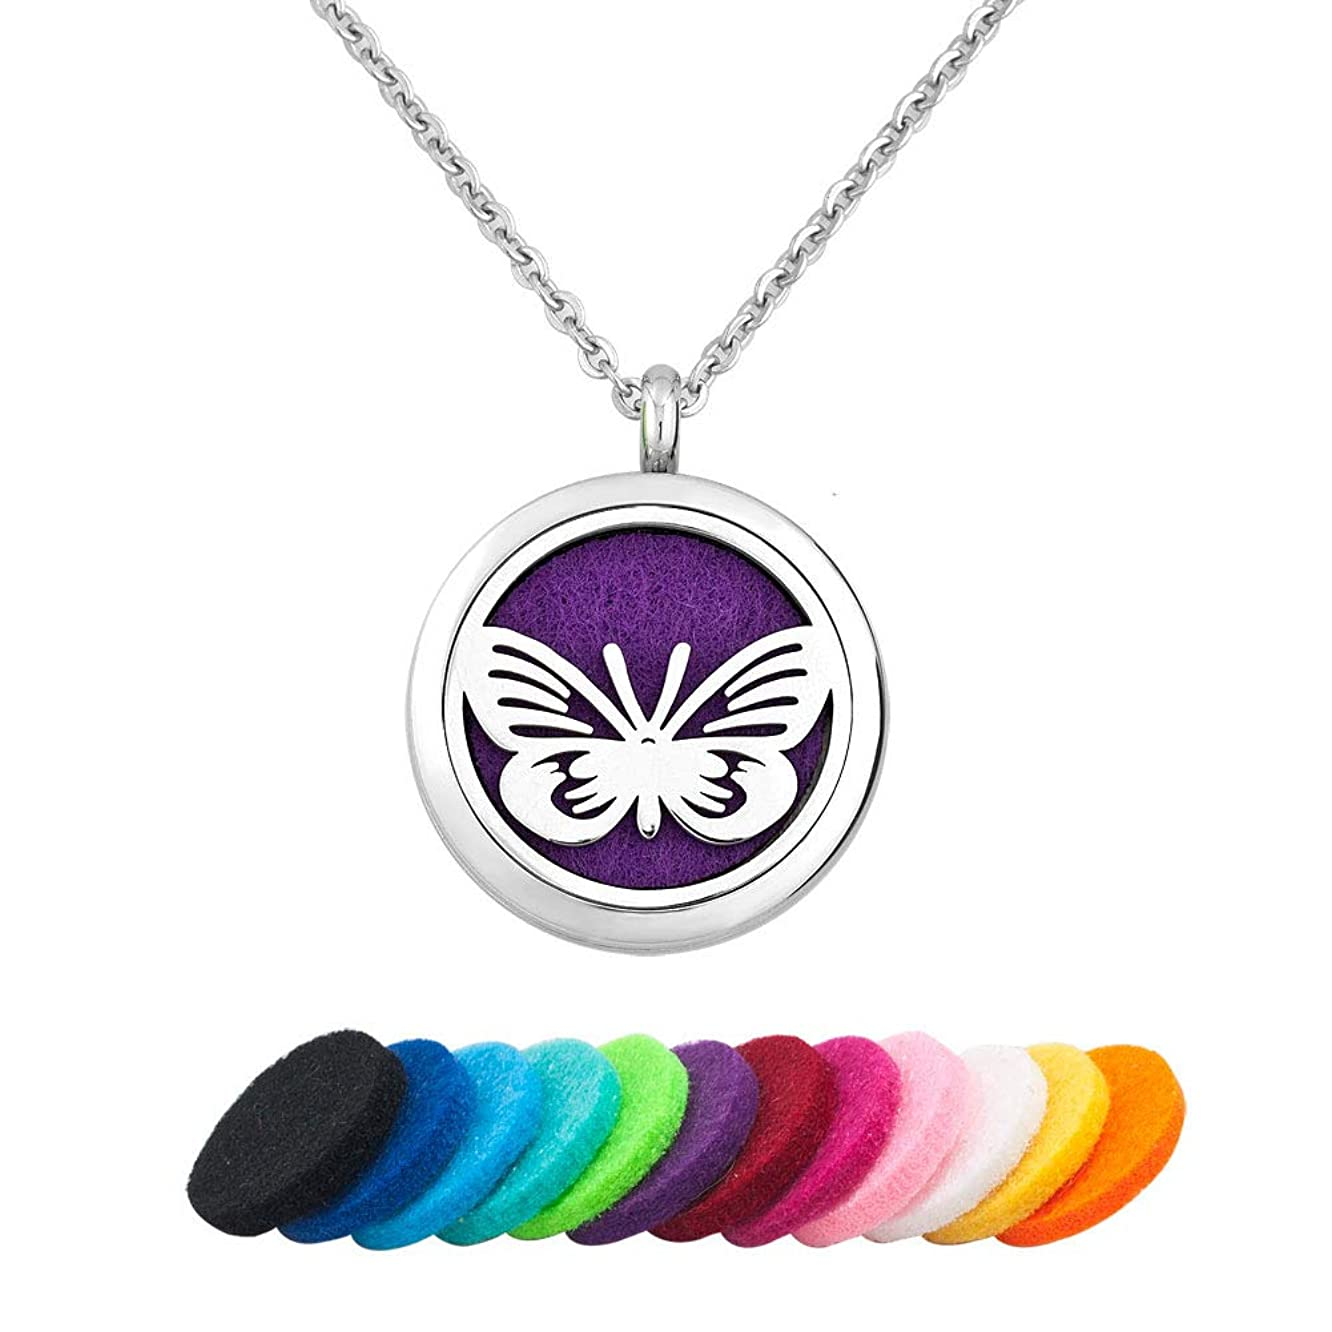 LoEnMe Jewelry Aromatherapy Essential Oil Diffuser Necklace Love Butterfly Animal Locket Pendant Women Girl Gift